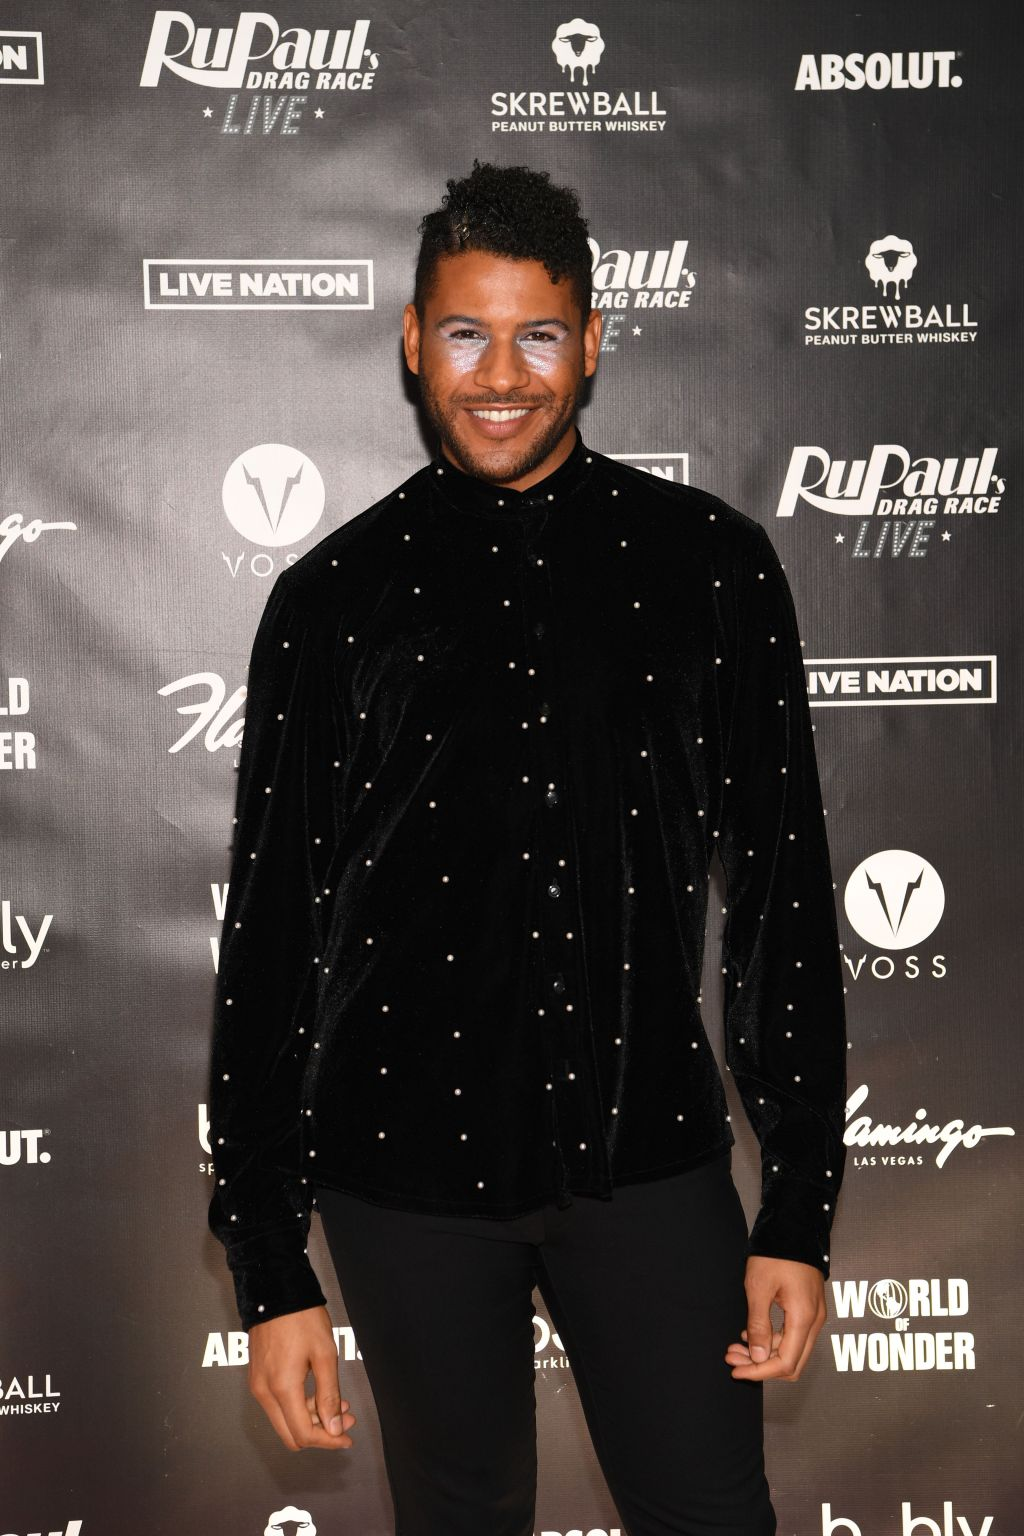 Canada's Drag Race Queens Rally Together To Support Jeffrey Bowyer-Chapman After He Deletes Twitter